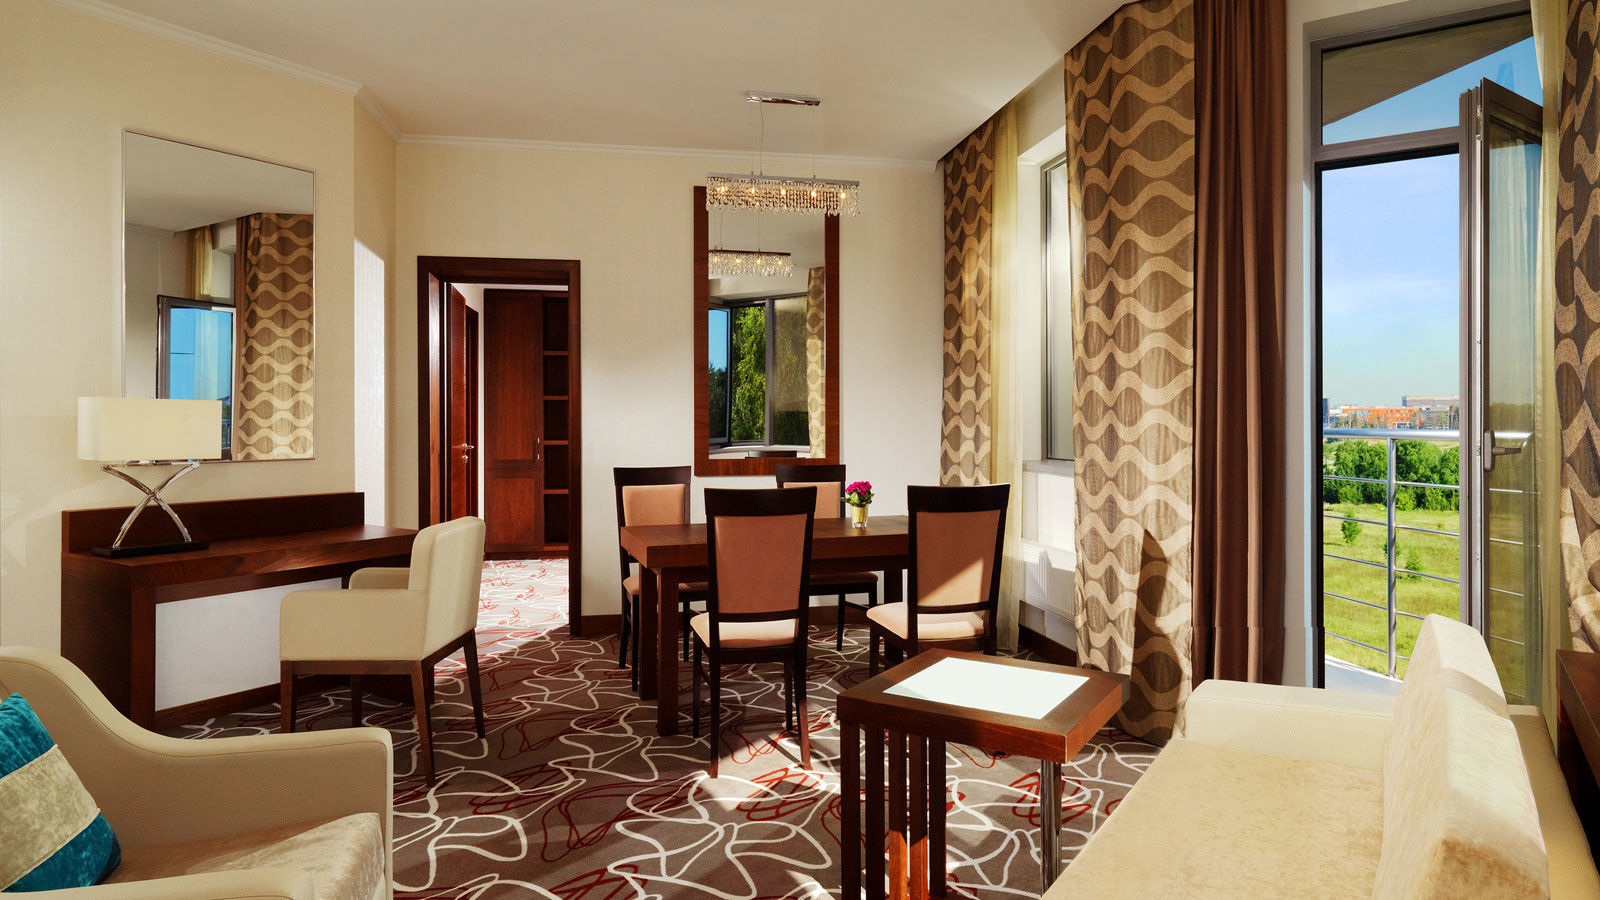 Corner Suite with a private balcony at Sheraton Moscow Sheremetyevo